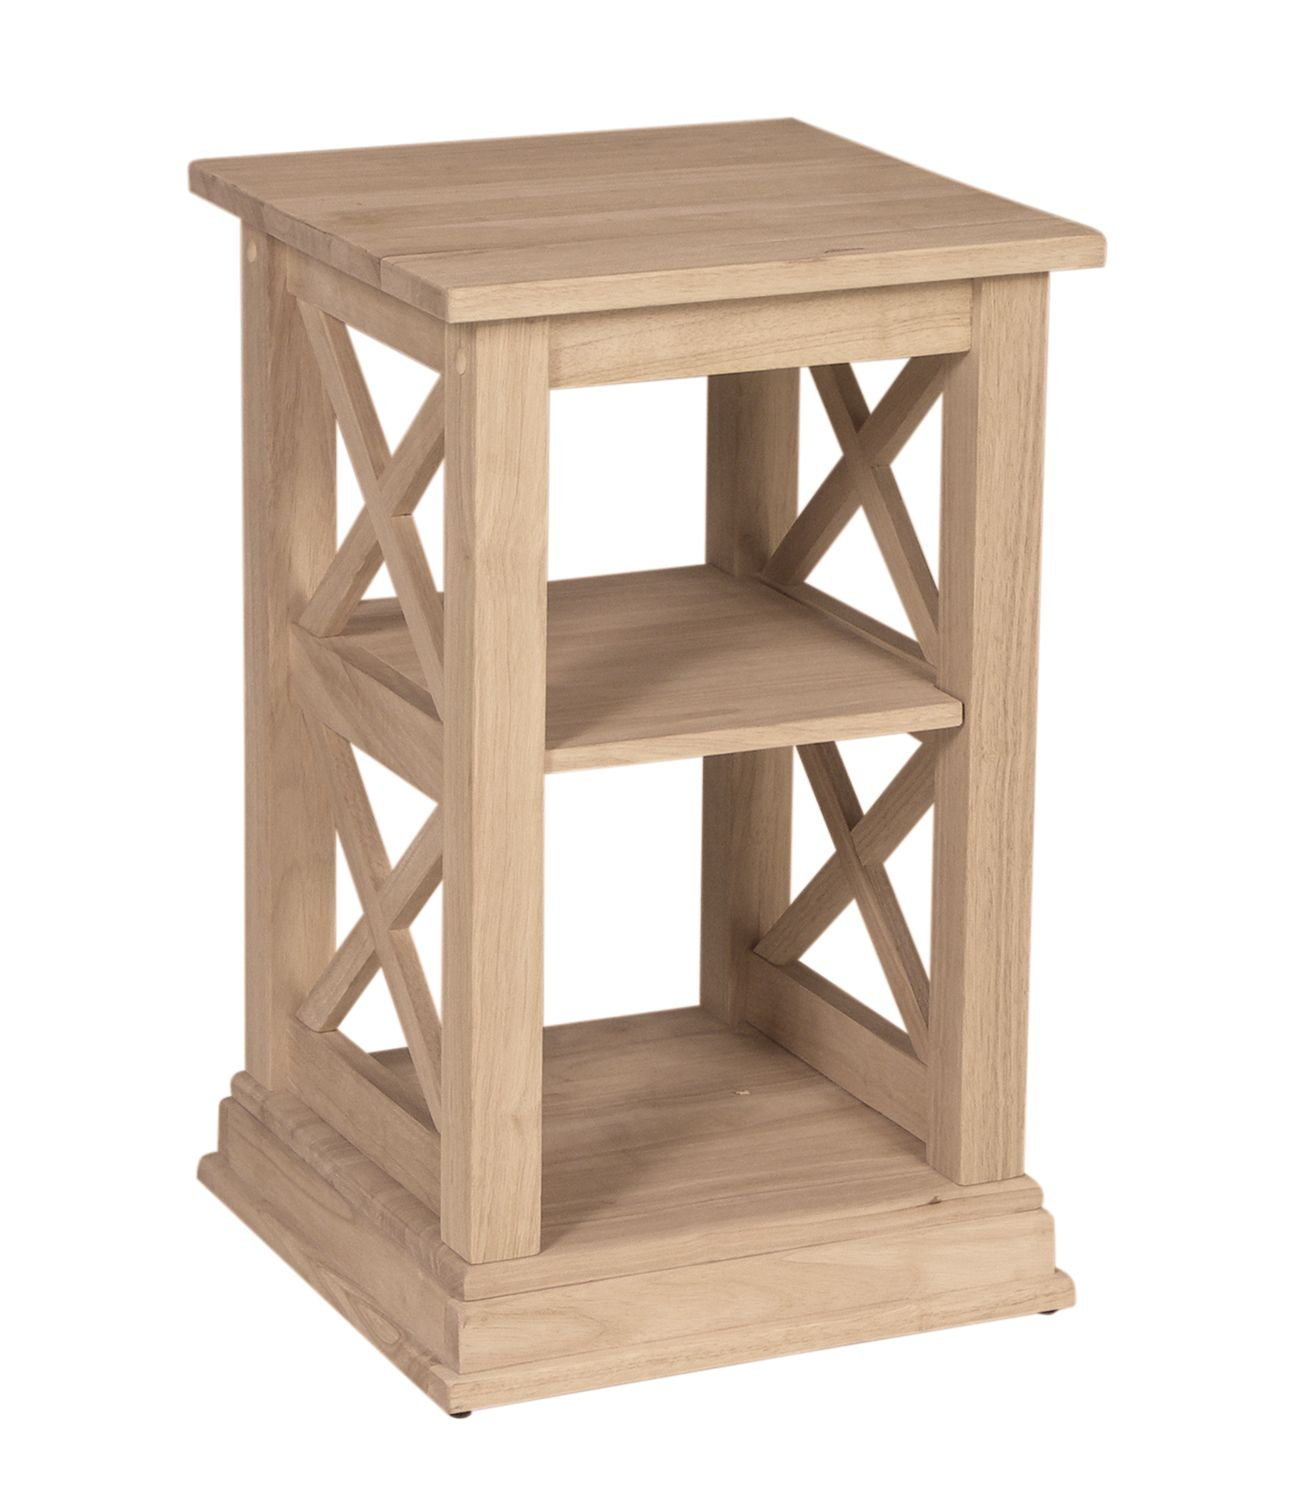 solid wood accent table update your home with natural unfinished furnishings naturalwoodfurnishings solidwoodfurniture diy customfurniture entrance mirror cabinet end tables built